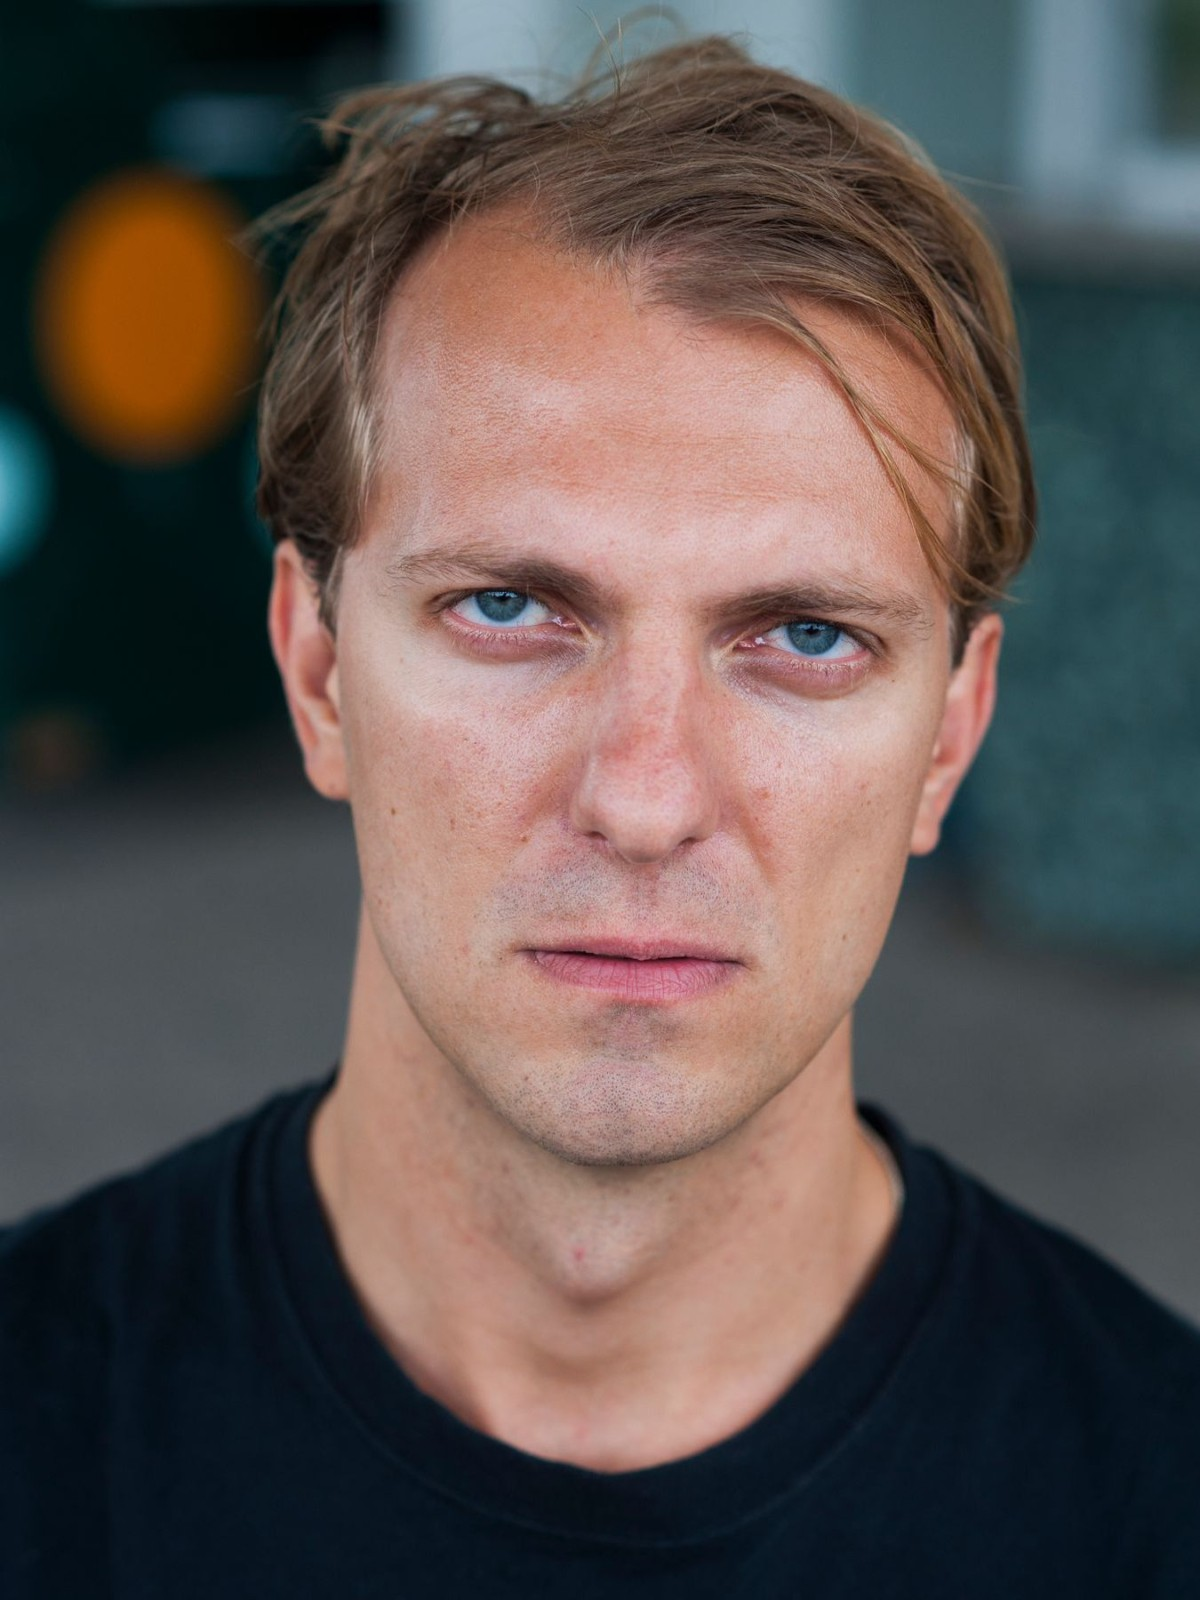 Felix Utting, Actors Agency Osman, Schauspielagentur Berlin